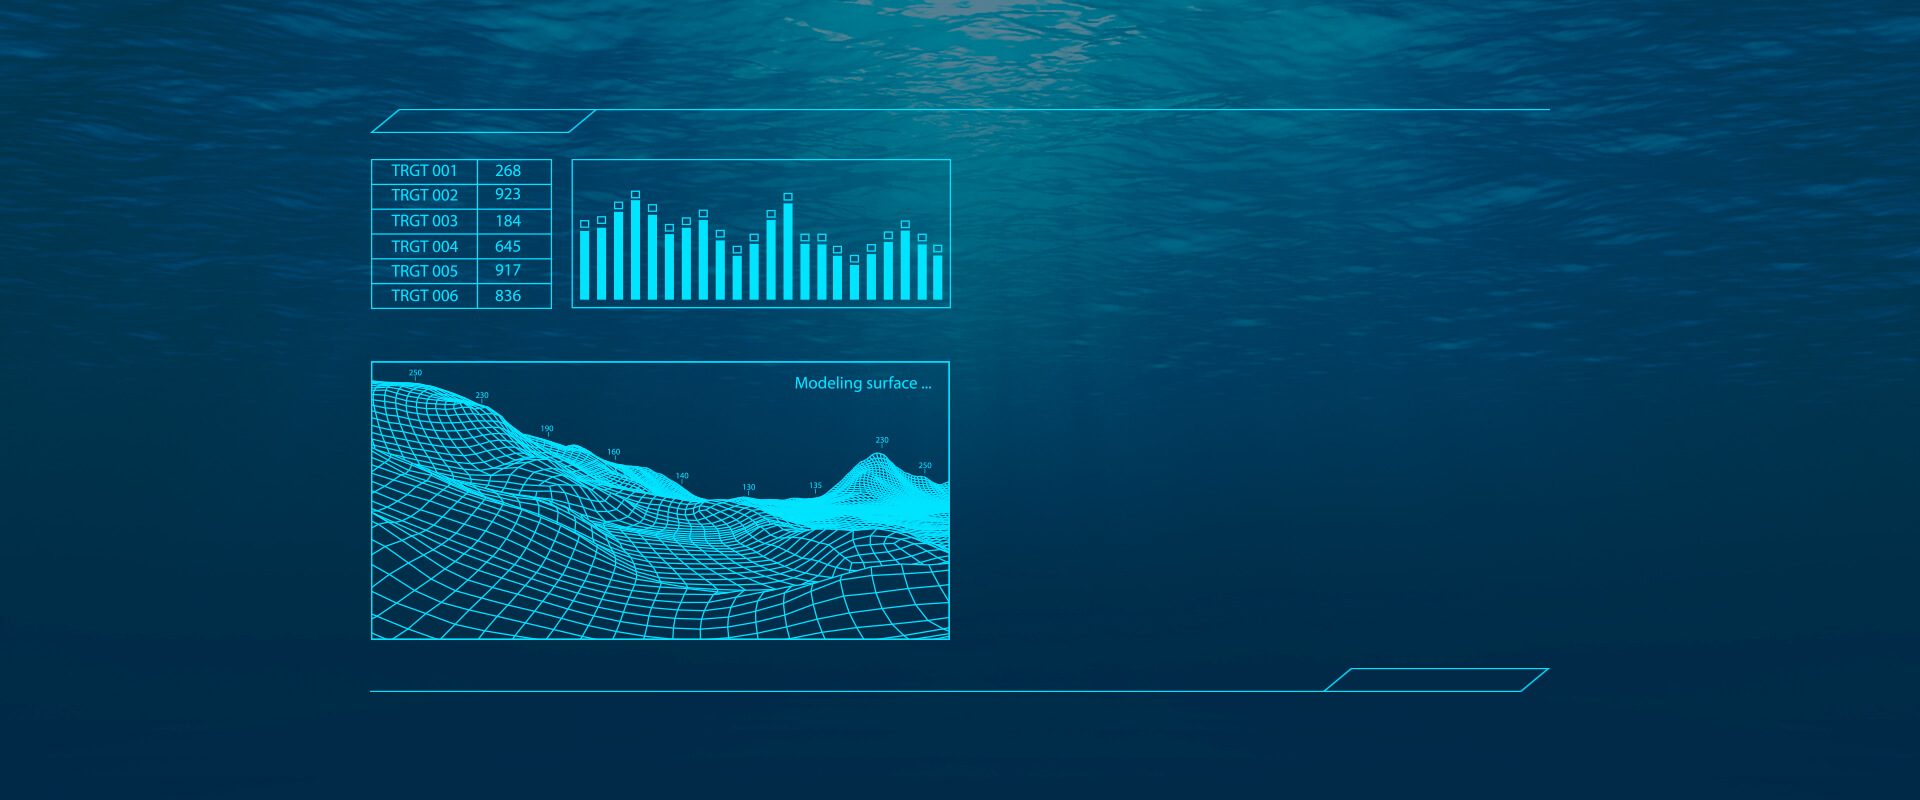 CL40Y 1 ecosounder img